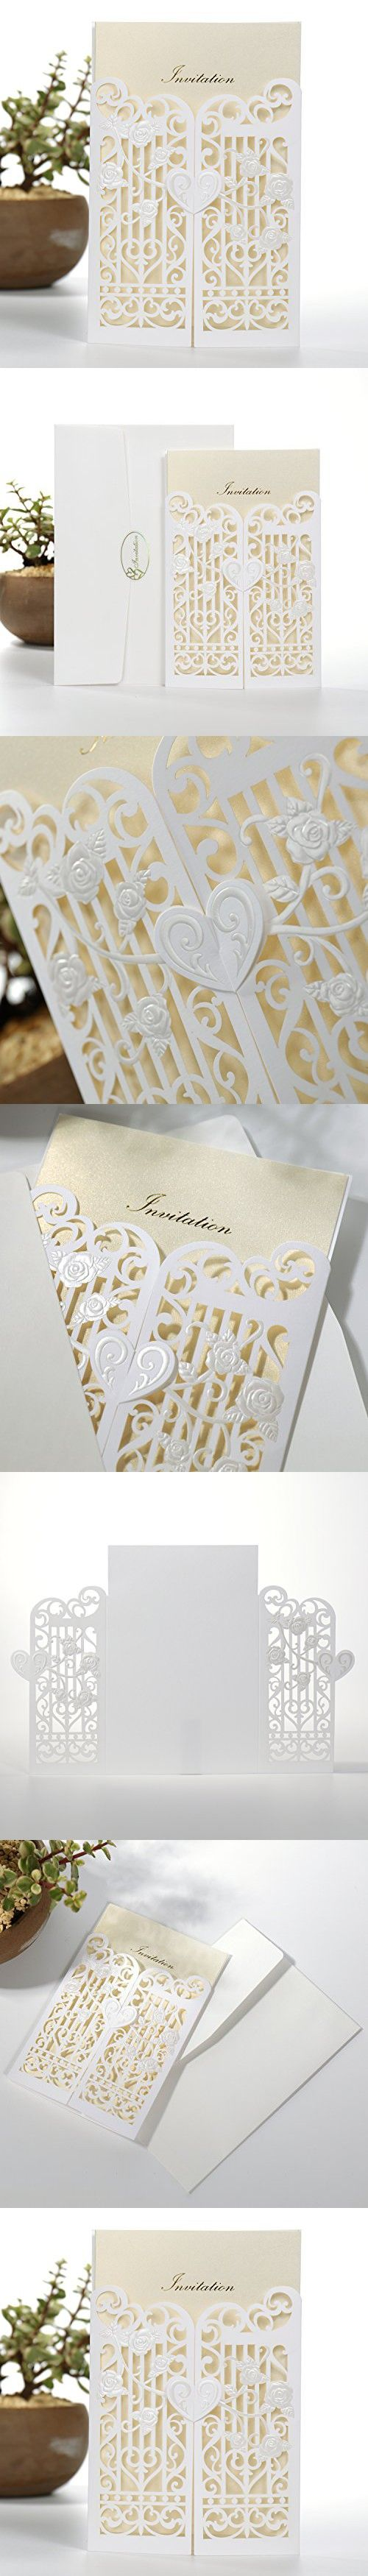 50PCS Pear Paper Laser Cut Bronzing Wedding Baby Shower Invitation Cards with Butterfly Hollow Favors Invitation Cardstock for Engagement Birthday Graduation (Convex White)